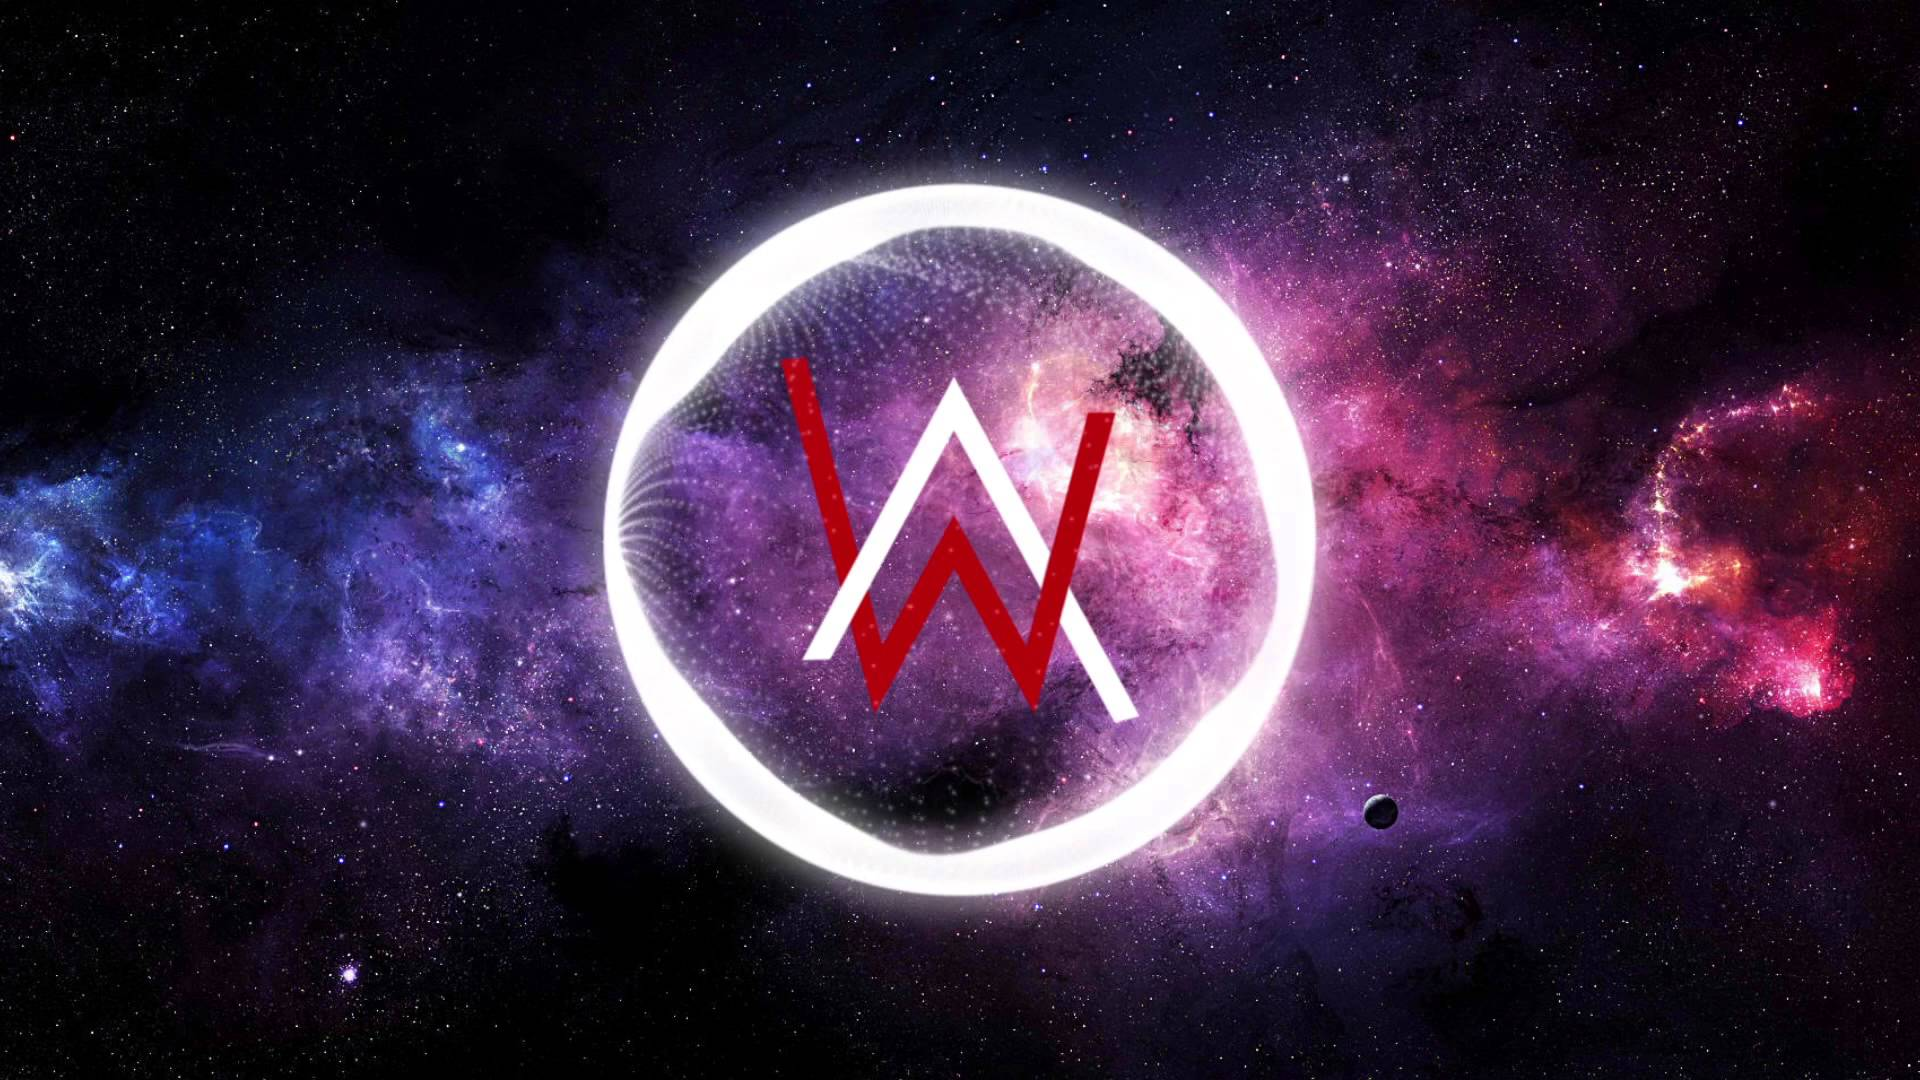 Songs in Alan Walker   Force YoutubelqYQXIt4SpA MooMash 1920x1080